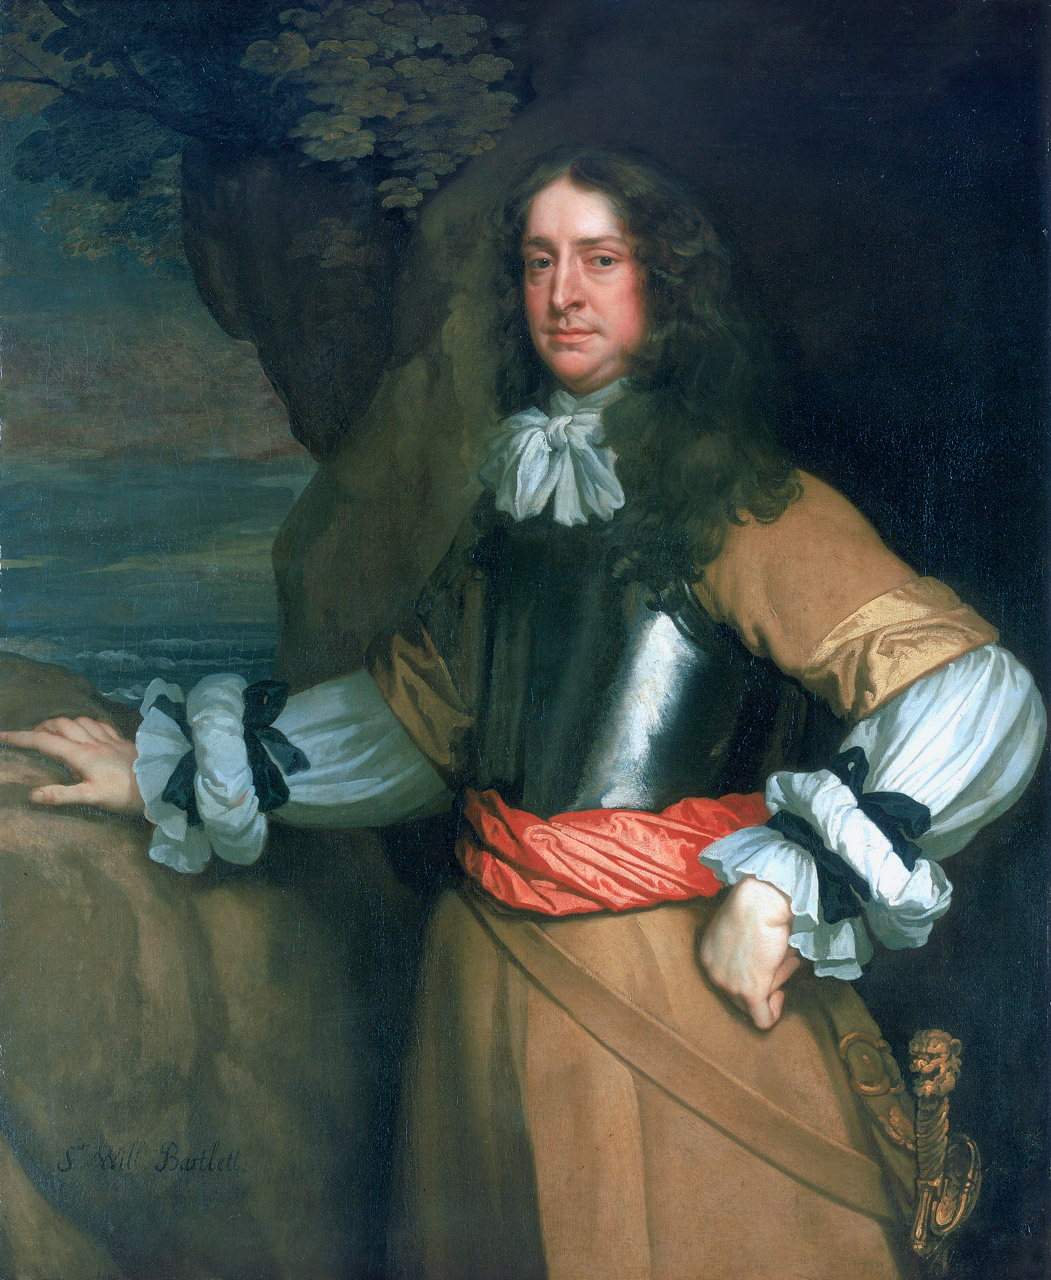 a biography of penn born in london the son of admiral sir william penn Sir william penn, (born april 23, 1621, bristol, gloucestershire, eng—died sept 16, 1670, london), british admiral and father of william penn, the founder of pennsylvania.